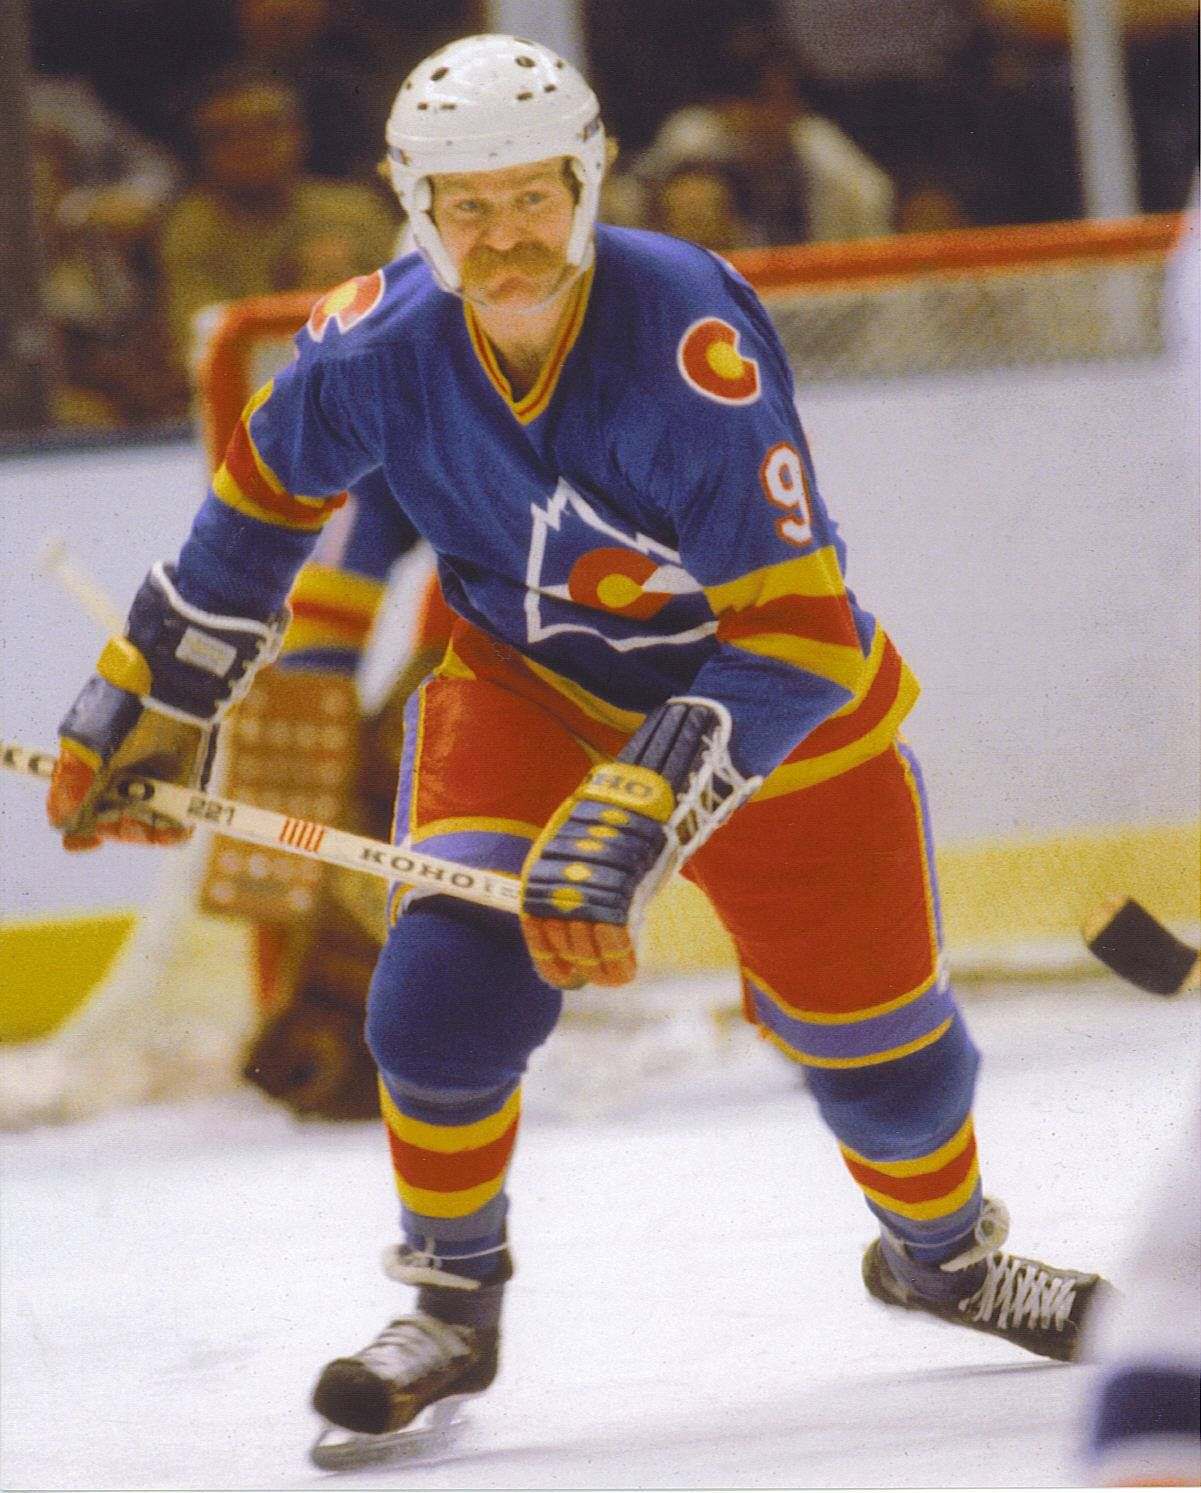 Lanny With The White Helmet Rare Sight With A Road Uniform Nhl Hockey Players Nhl Players Hockey